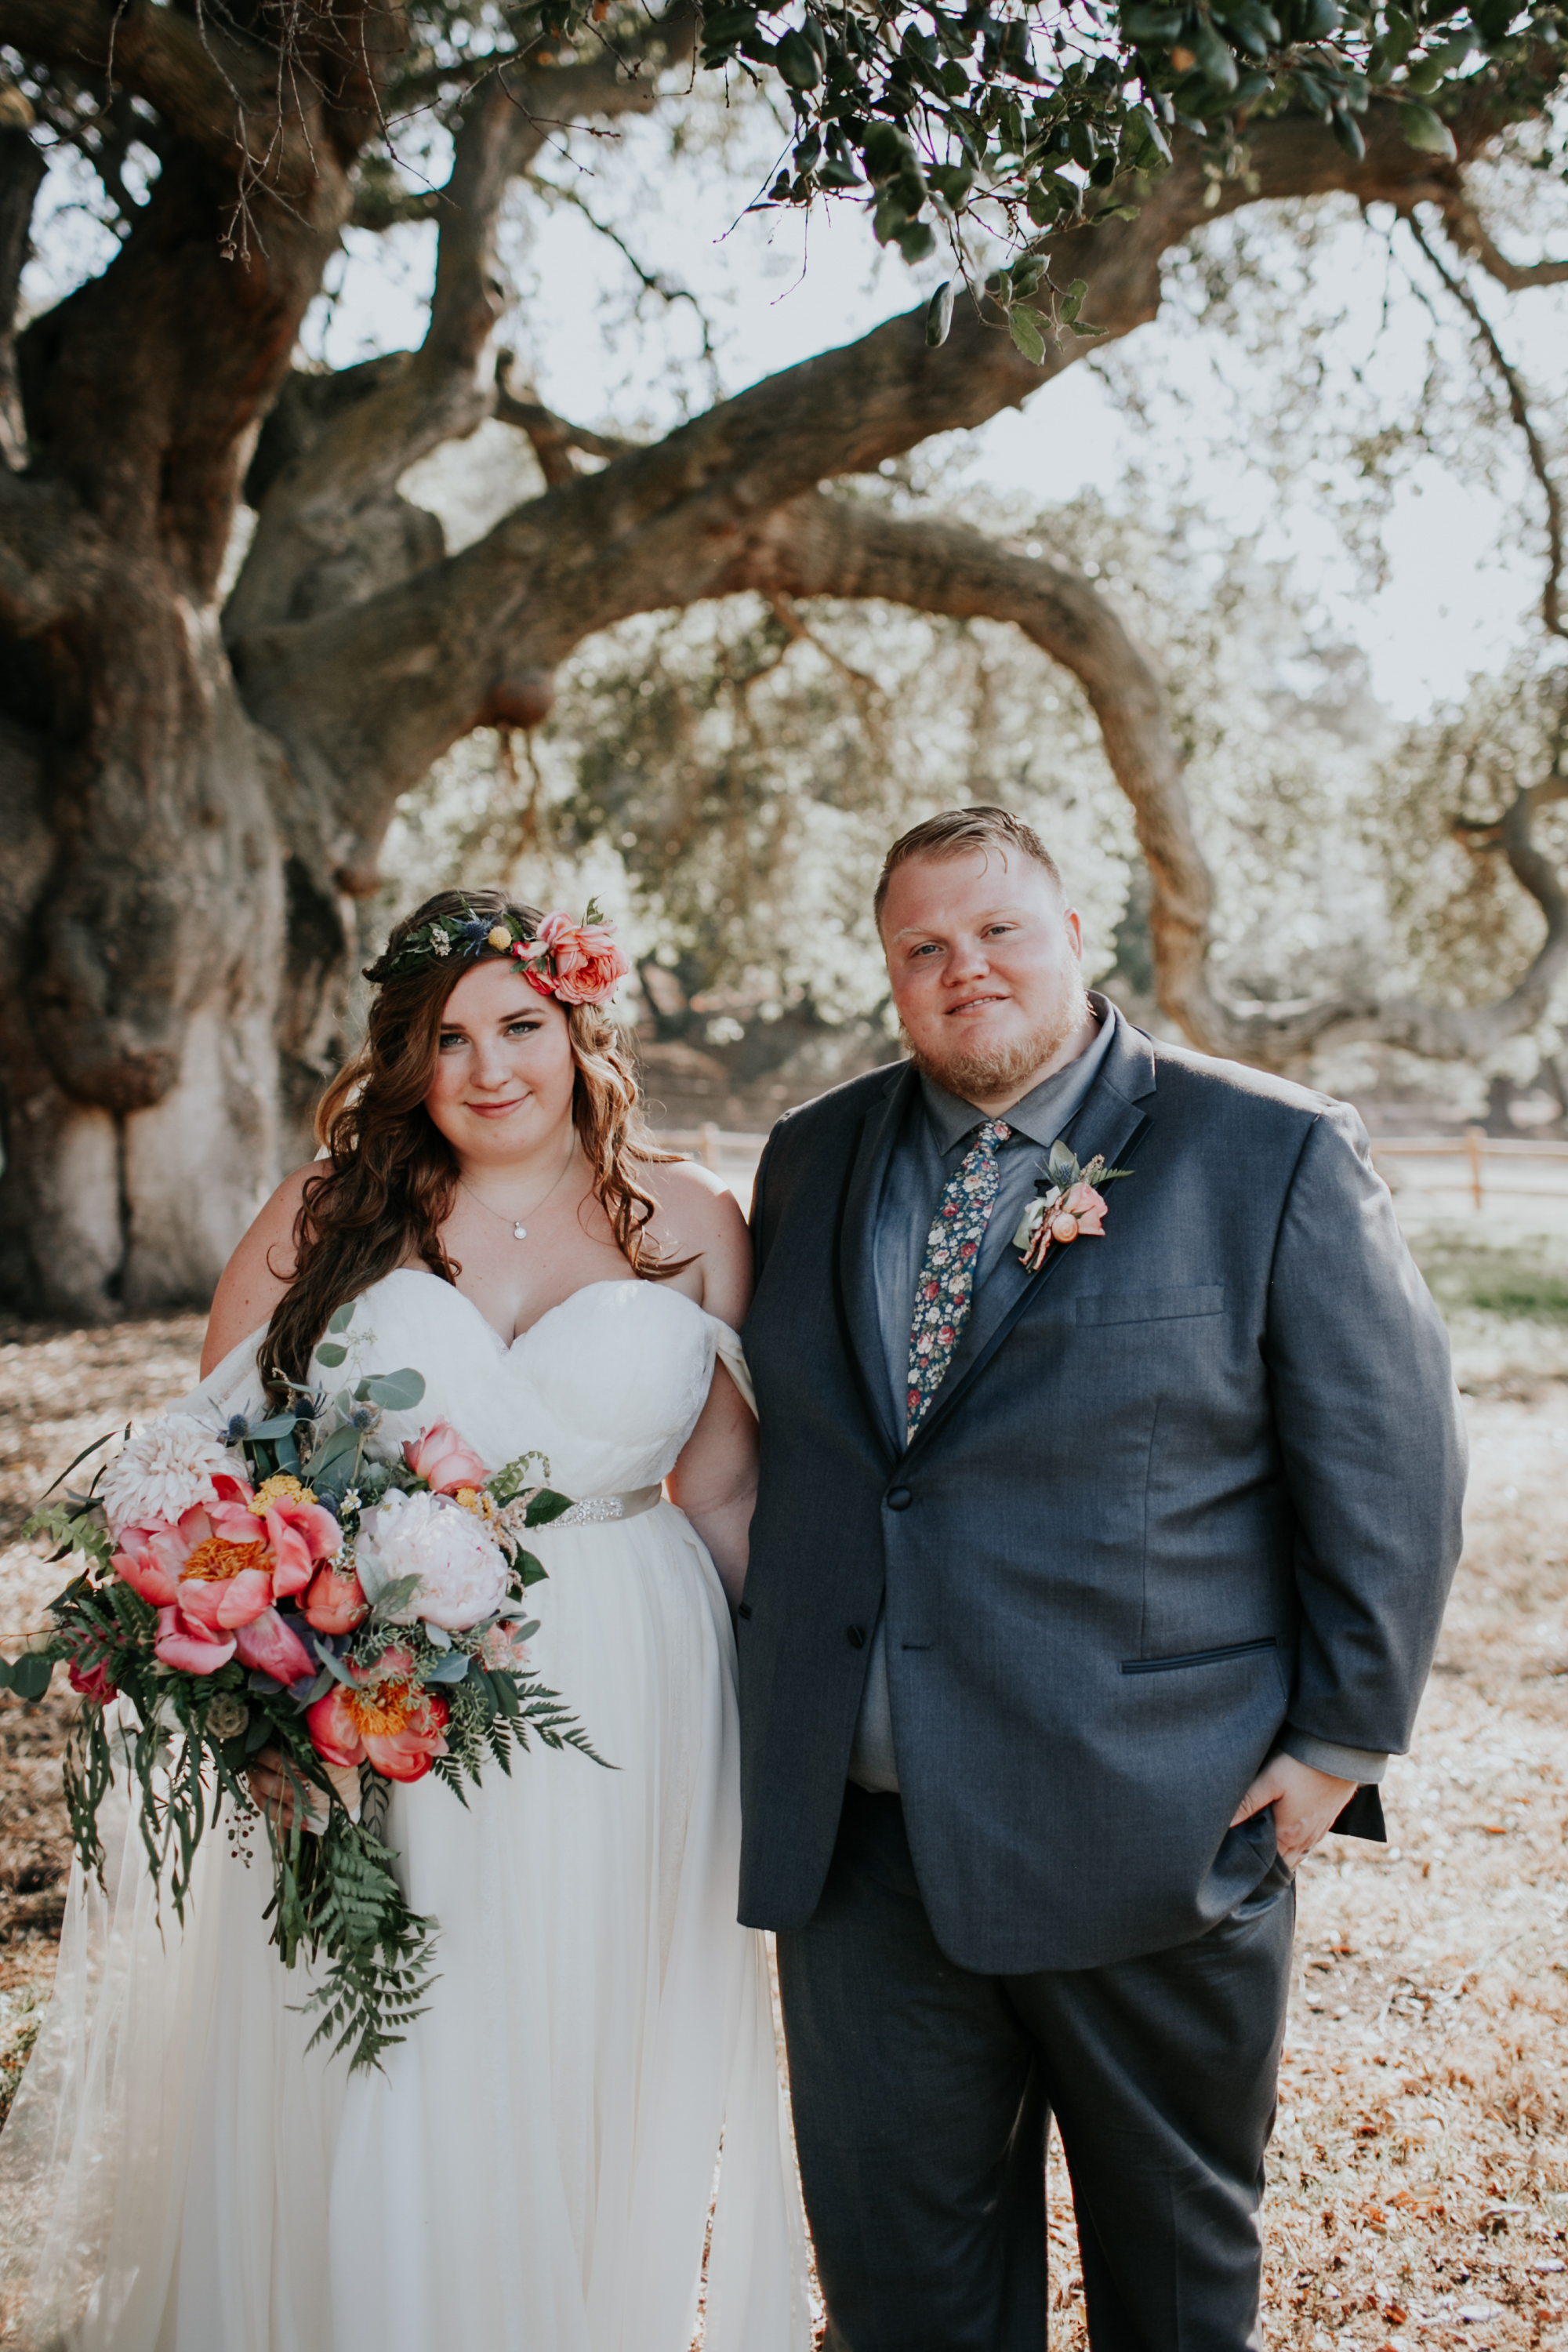 My husband Ricky & I got married in June 2016! - My husband Ricky & I got married in June 2016! Chances are, you'll meet him at some point in time because is my second shooter. He is wonderful & a fellow creative soul. I planned our wedding from